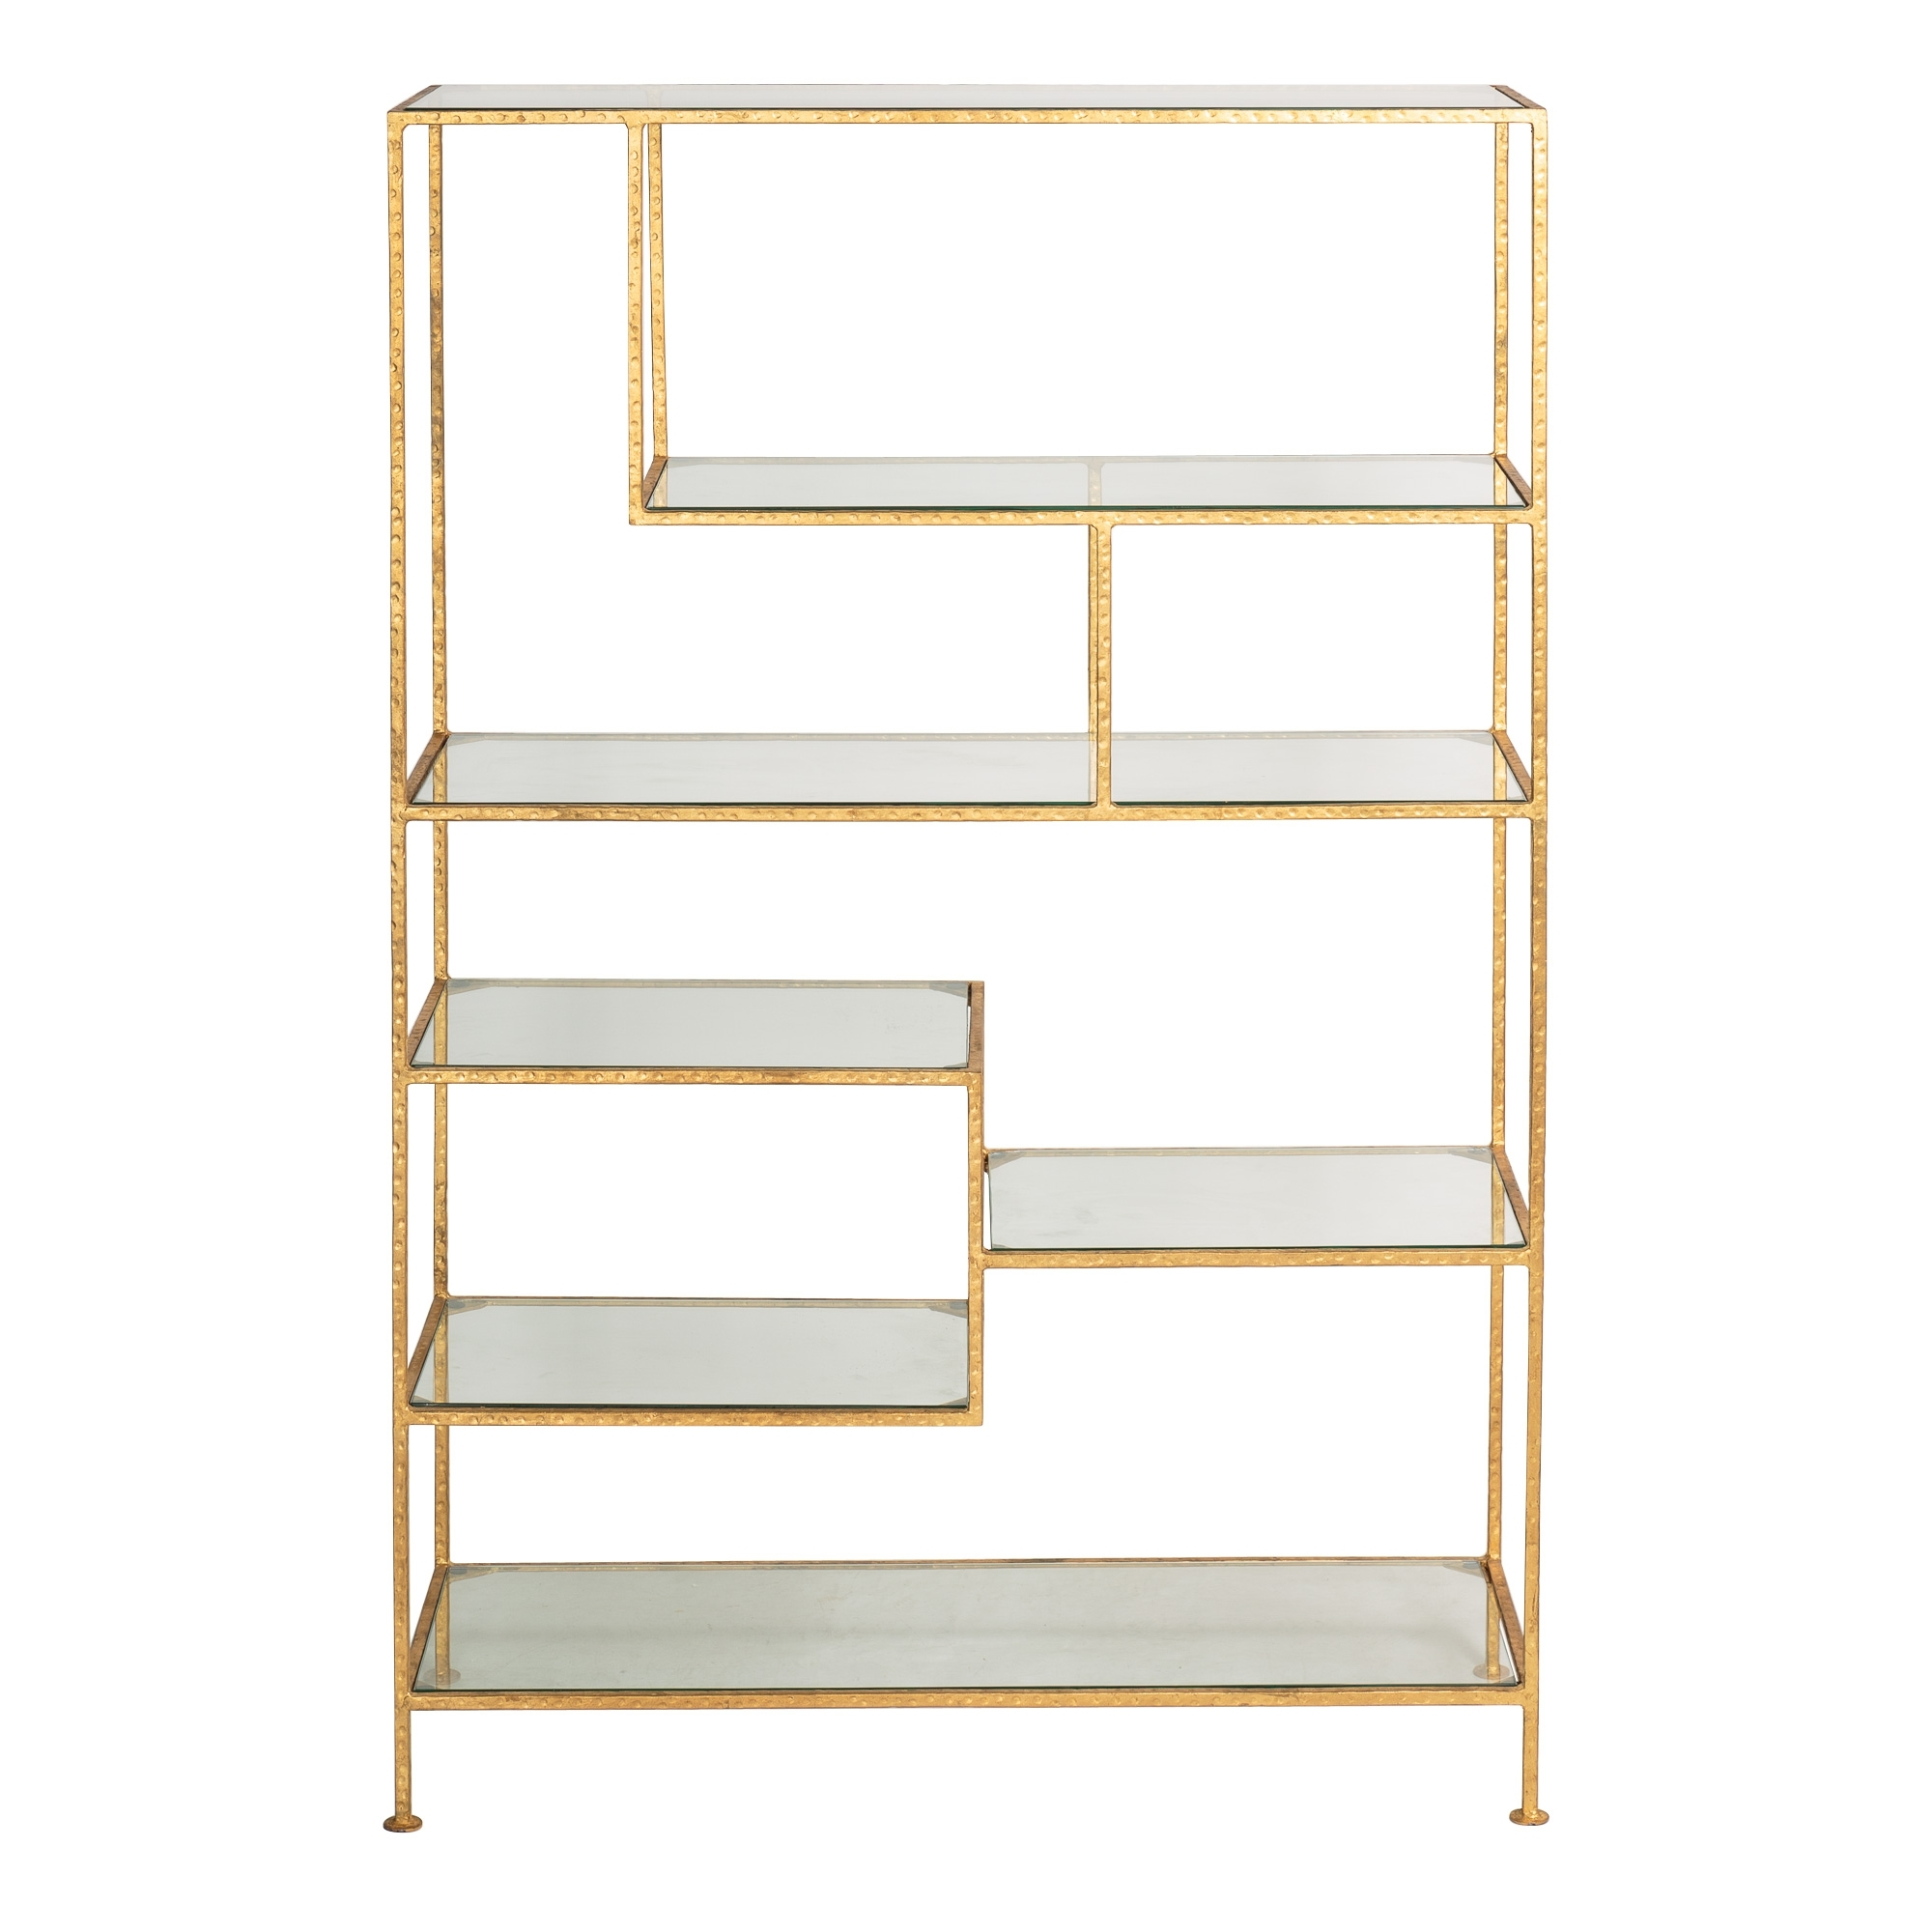 Captivating Gold Shelves Interesting Decoration And Bookcases With Regard To Fashionable Gold Metal Bookcases (View 10 of 15)